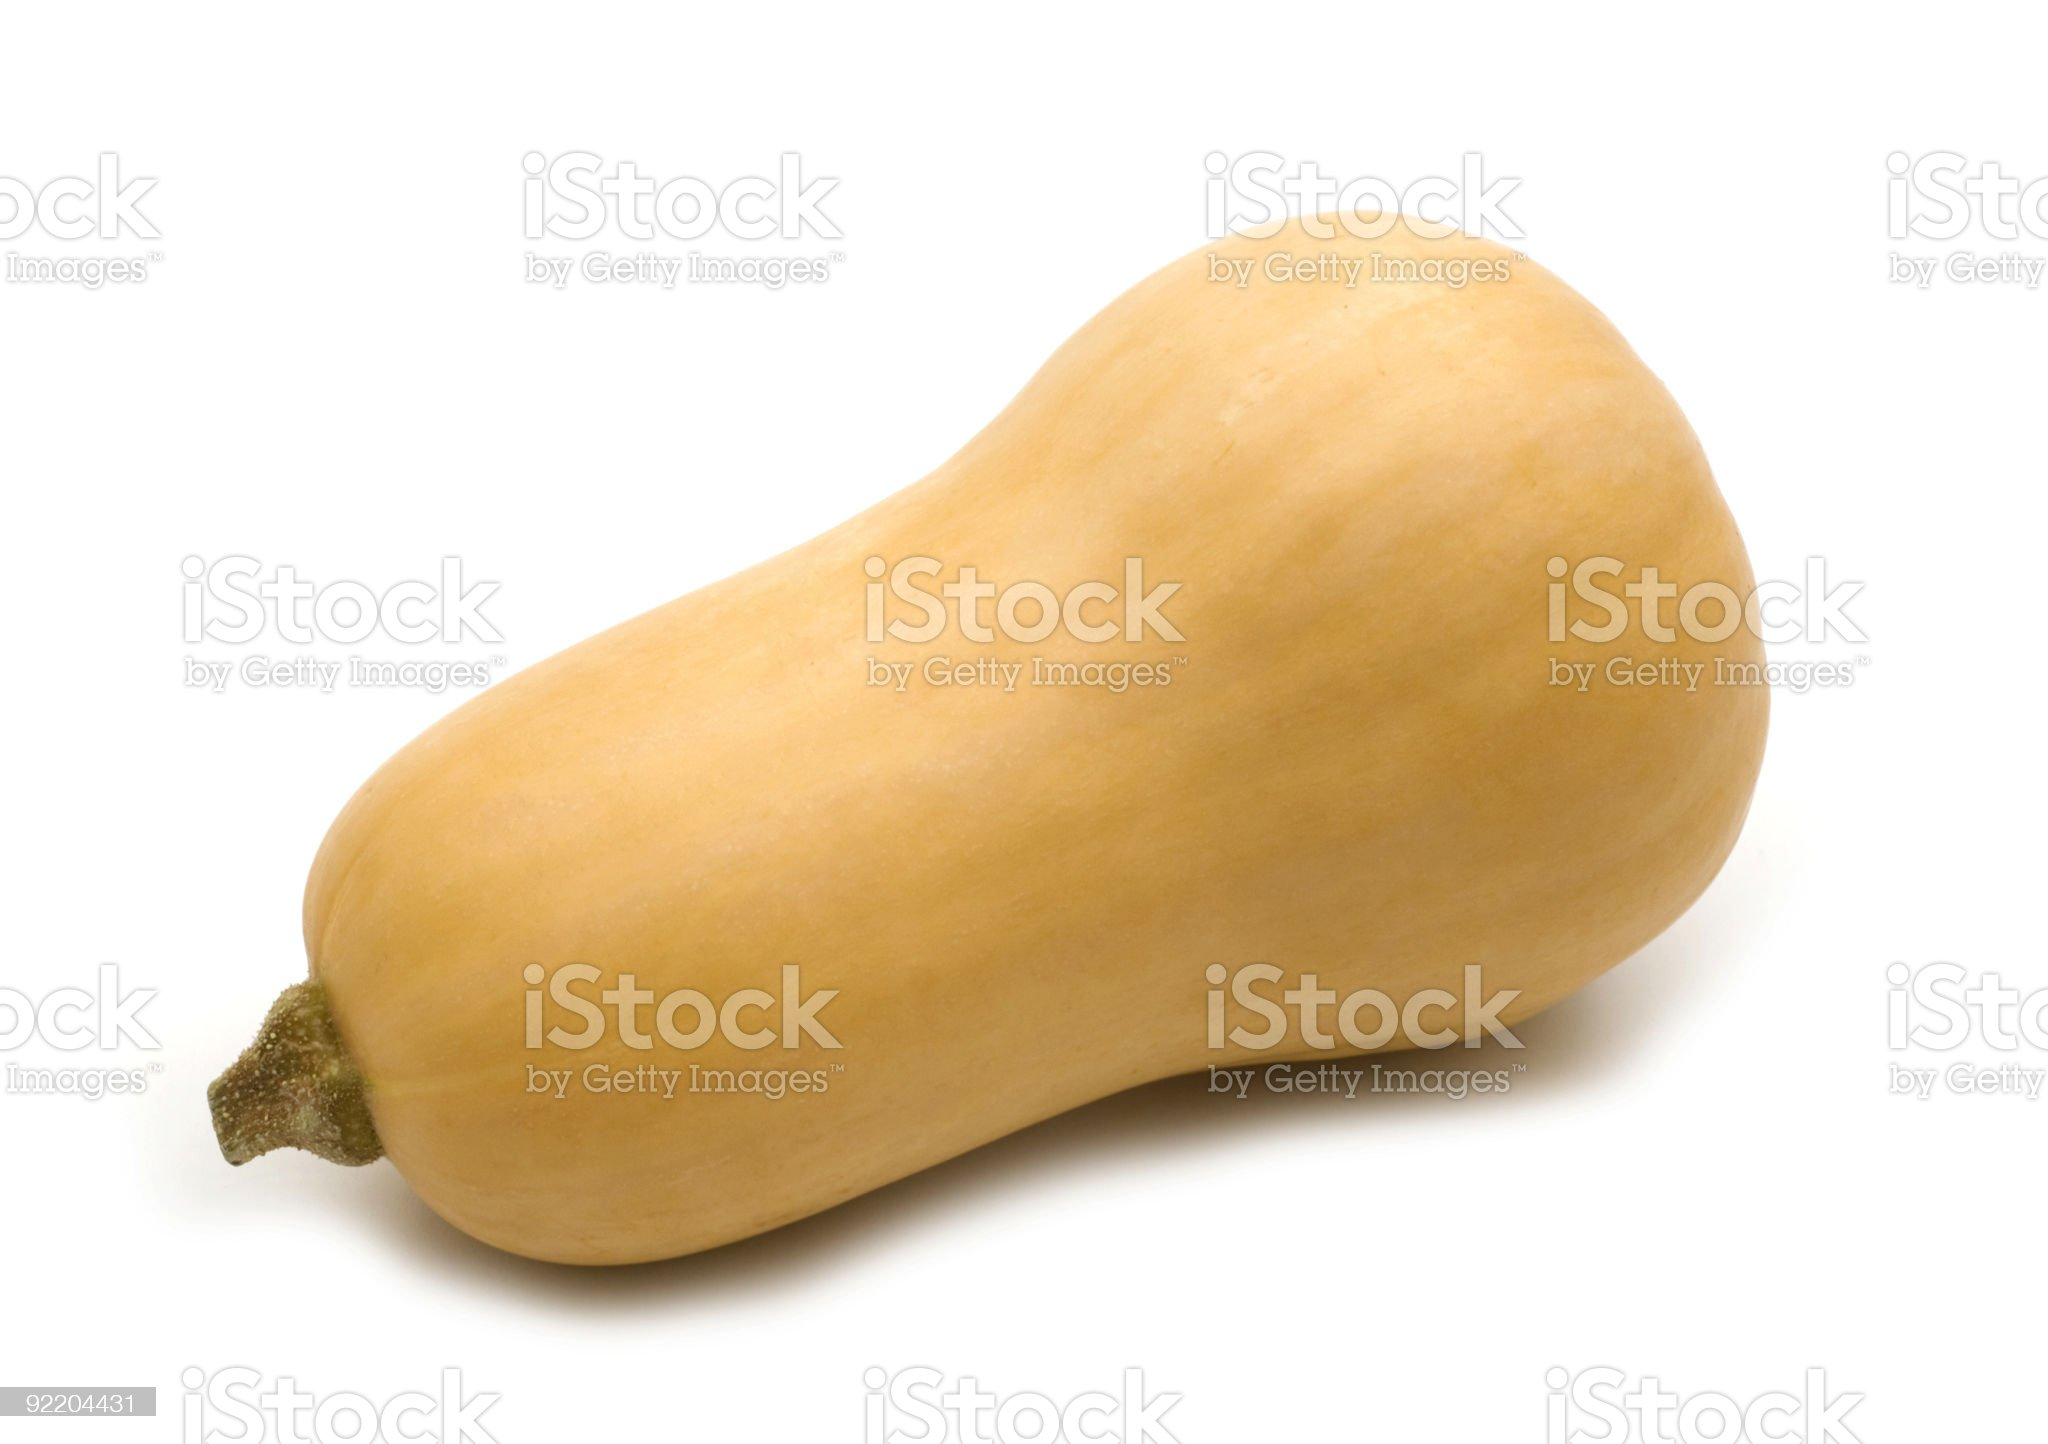 A fresh and ready butternut squash on a white background royalty-free stock photo